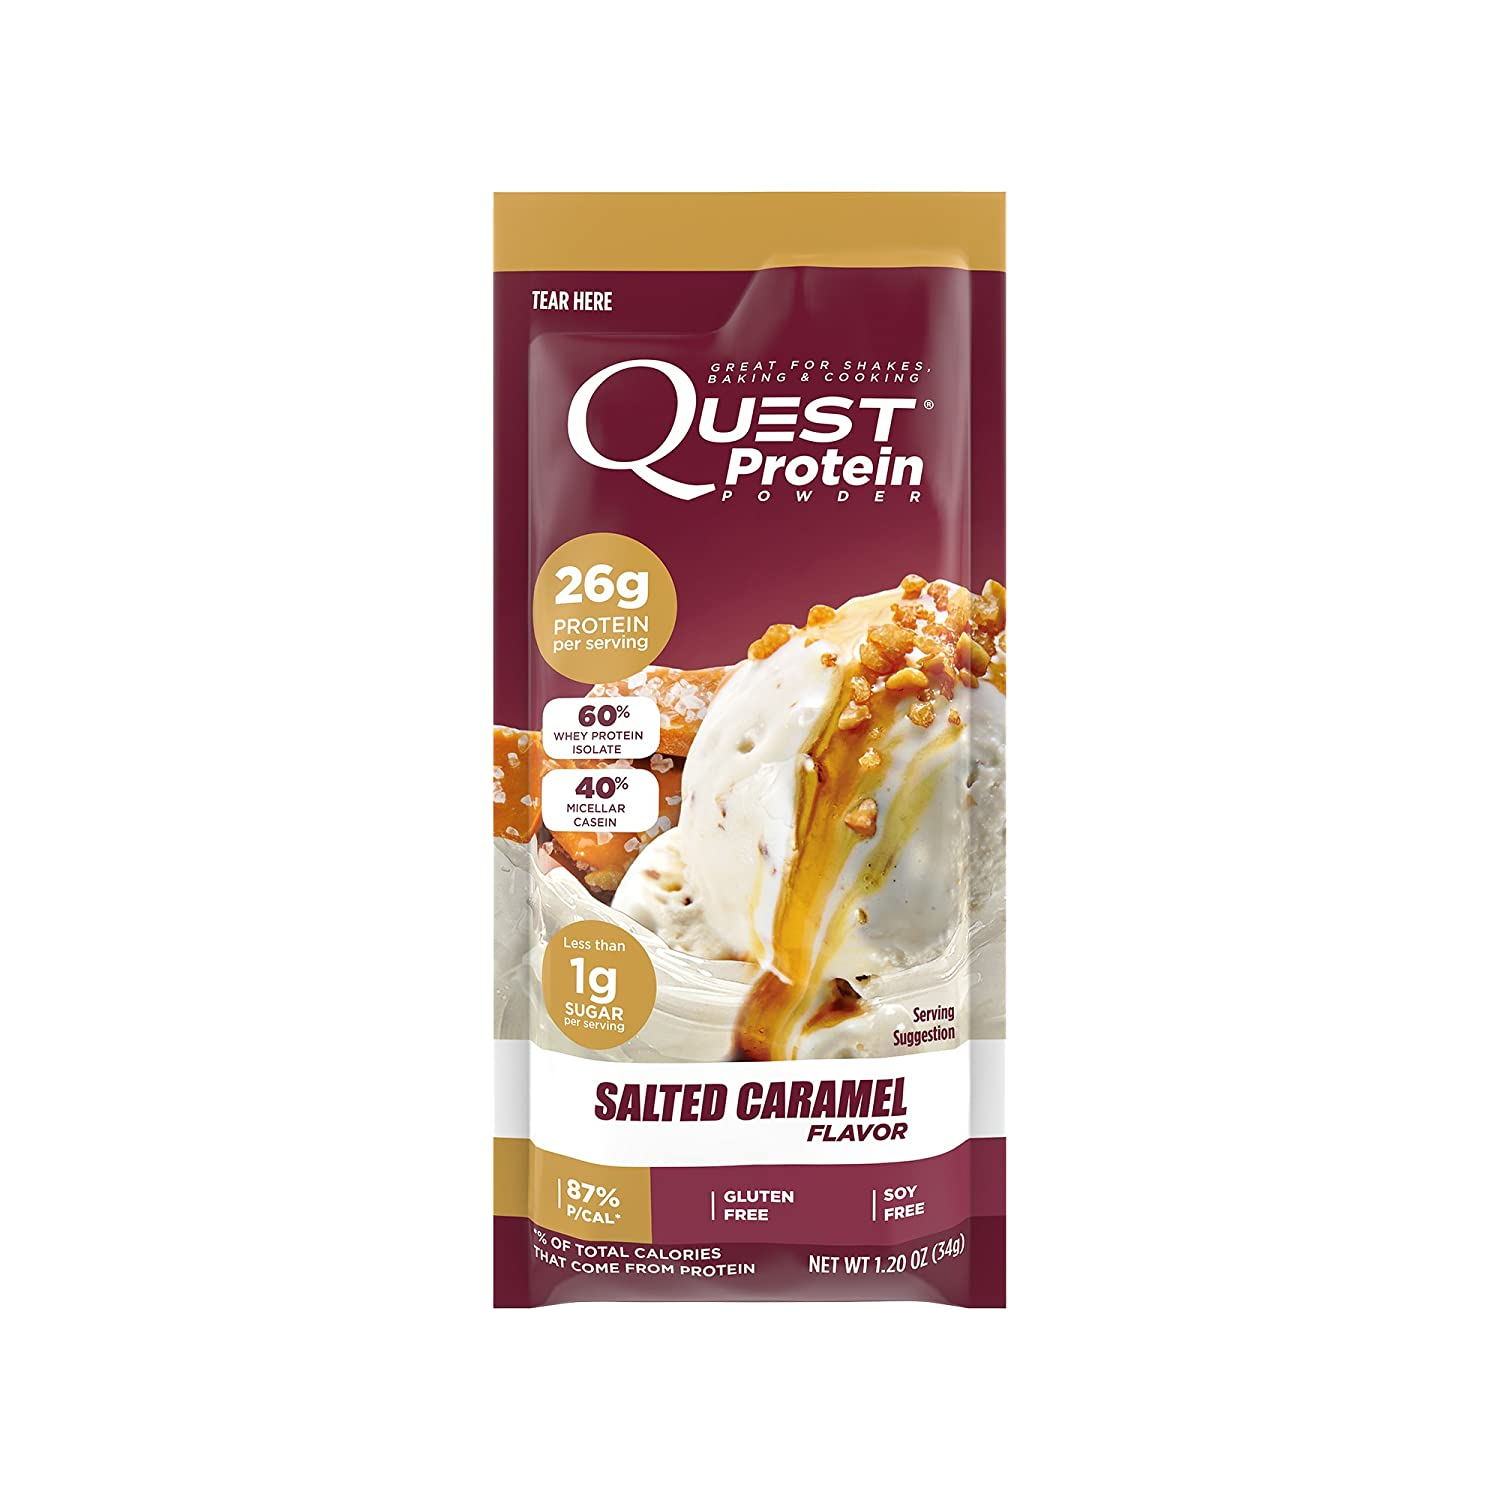 Quest Nutrition Protein Powder, Salted Caramel, 22g Protein, 88 P Cals, 0g Sugar, 3g Net Carbs, Low Carb, Gluten Free, Soy Free, 1.13oz Packet, 12 Count, Packaging May Vary